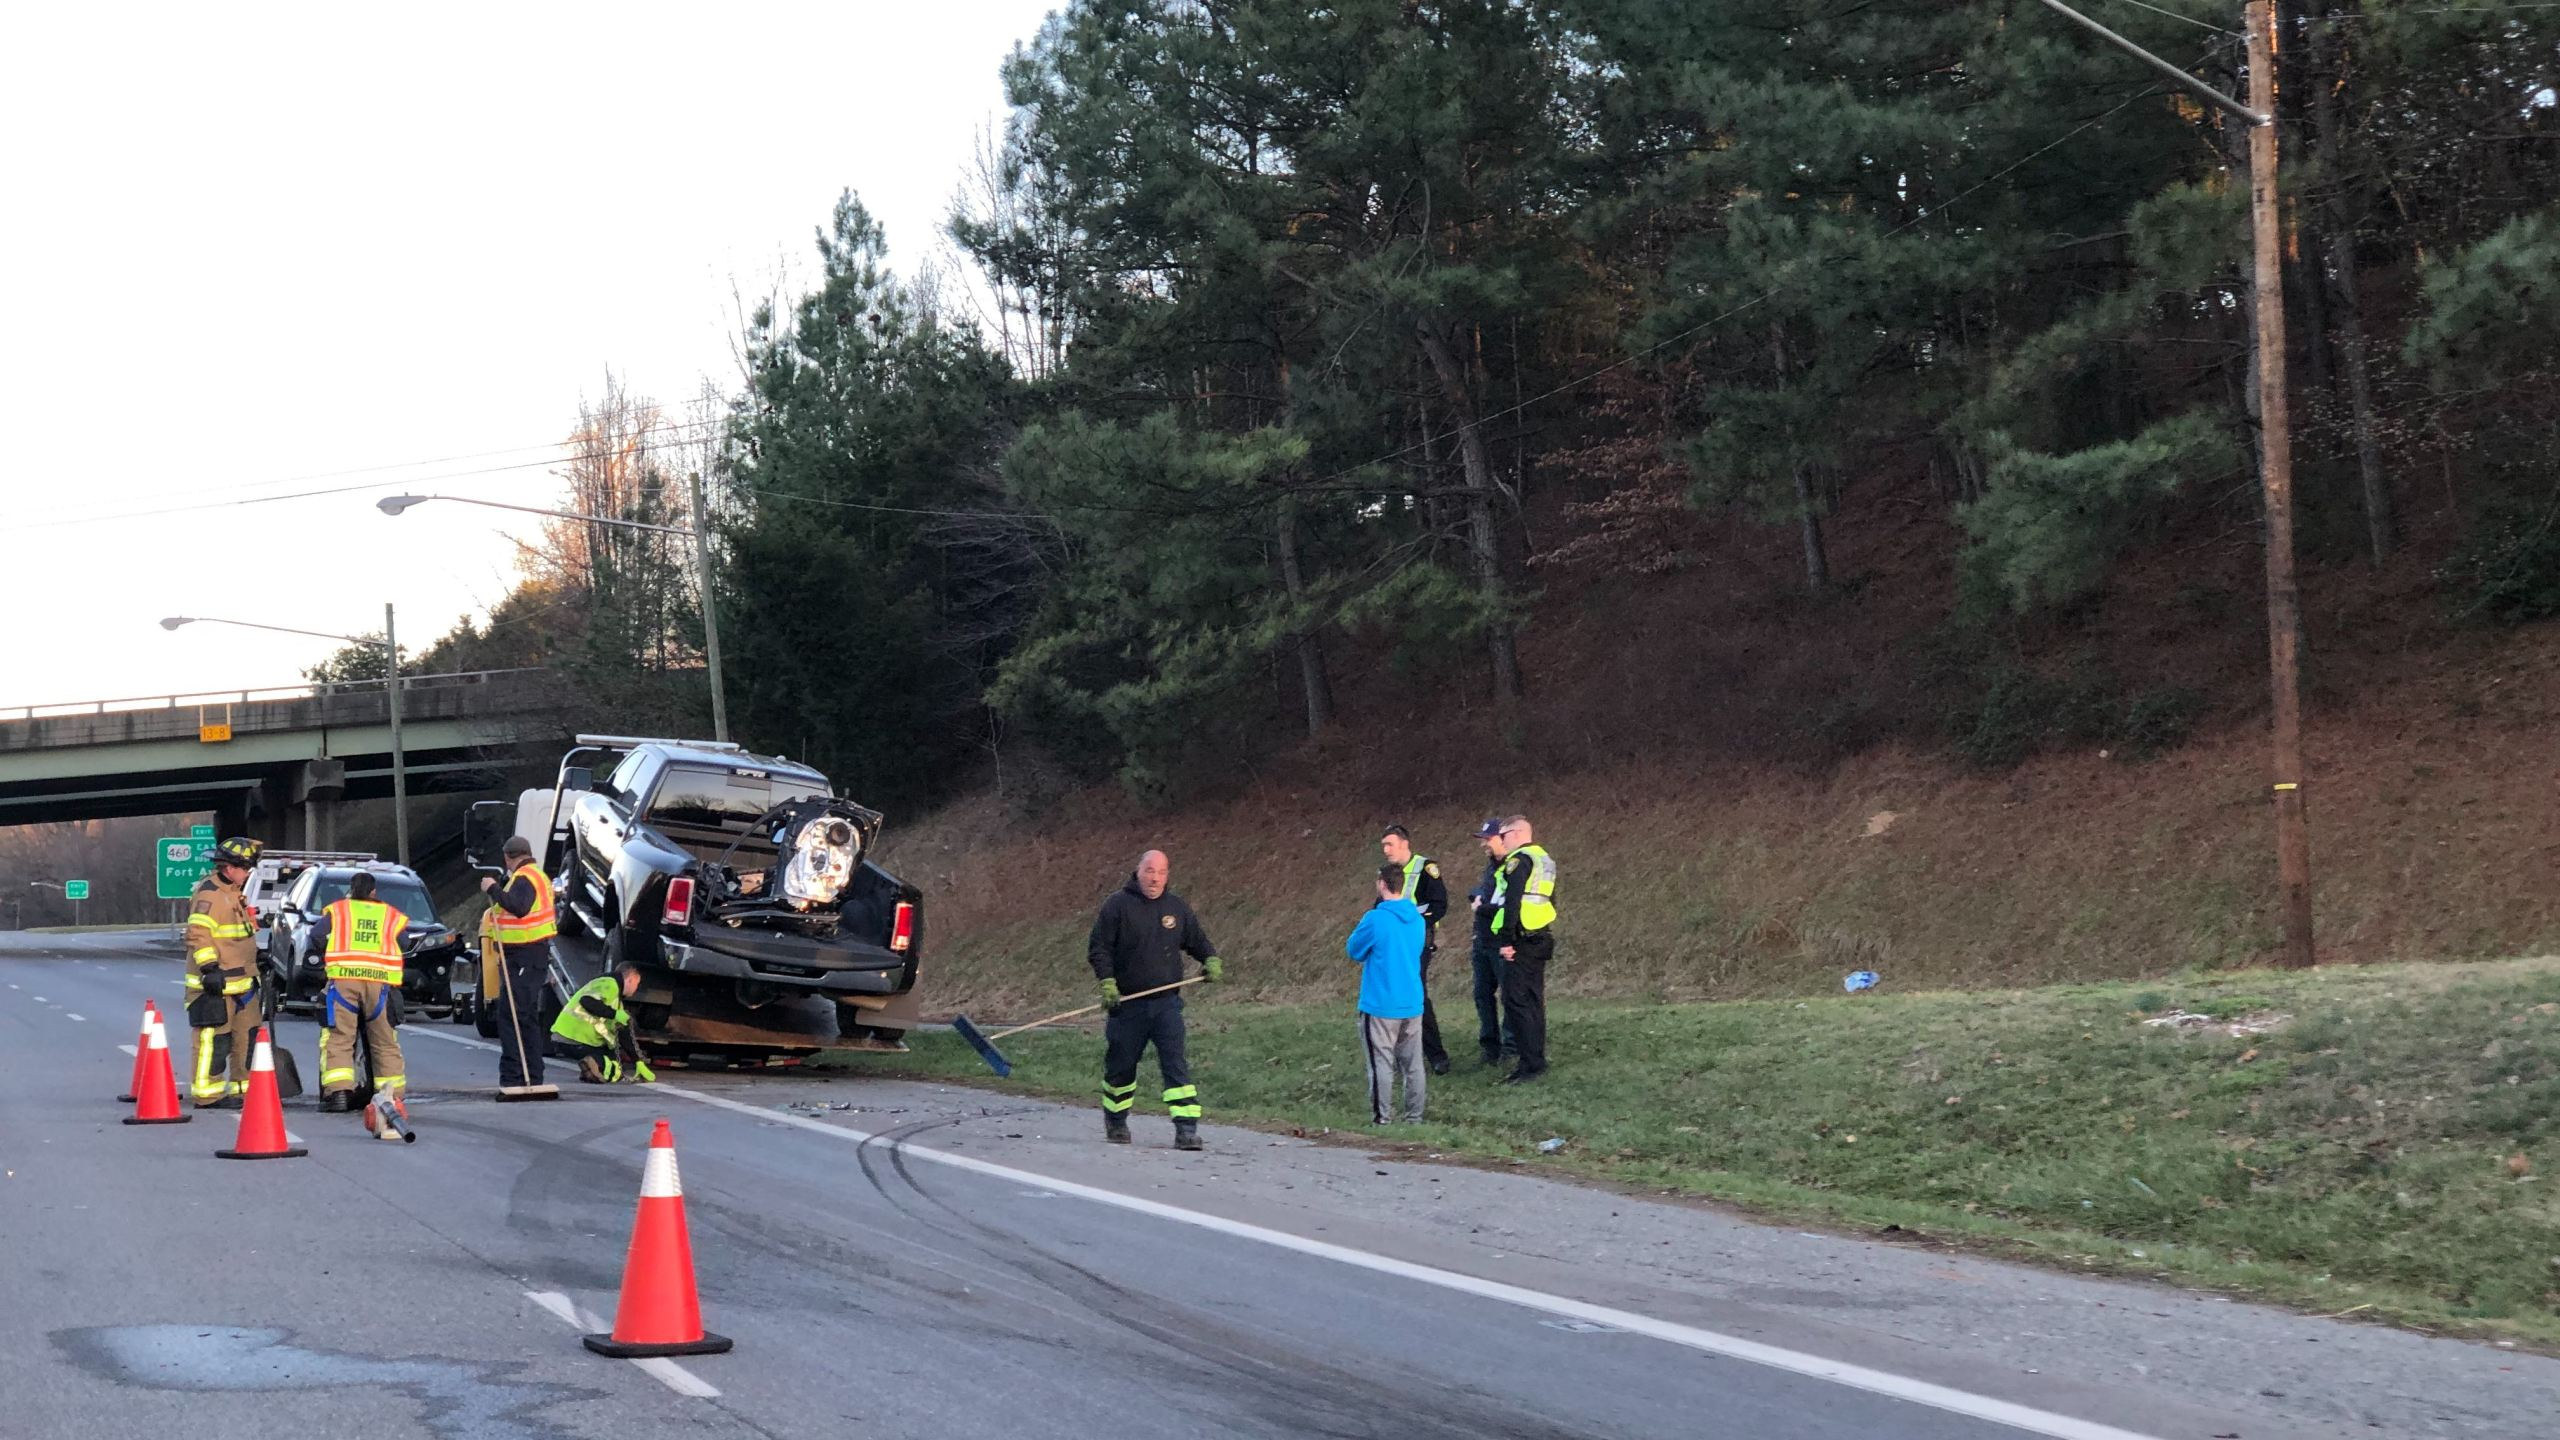 A multi-vehicle crash temporarily slowed southbound traffic along US 501 in Lynchburg on Saturday, Feb. 22. (Photo: Ryan Saylor/WFXR News)